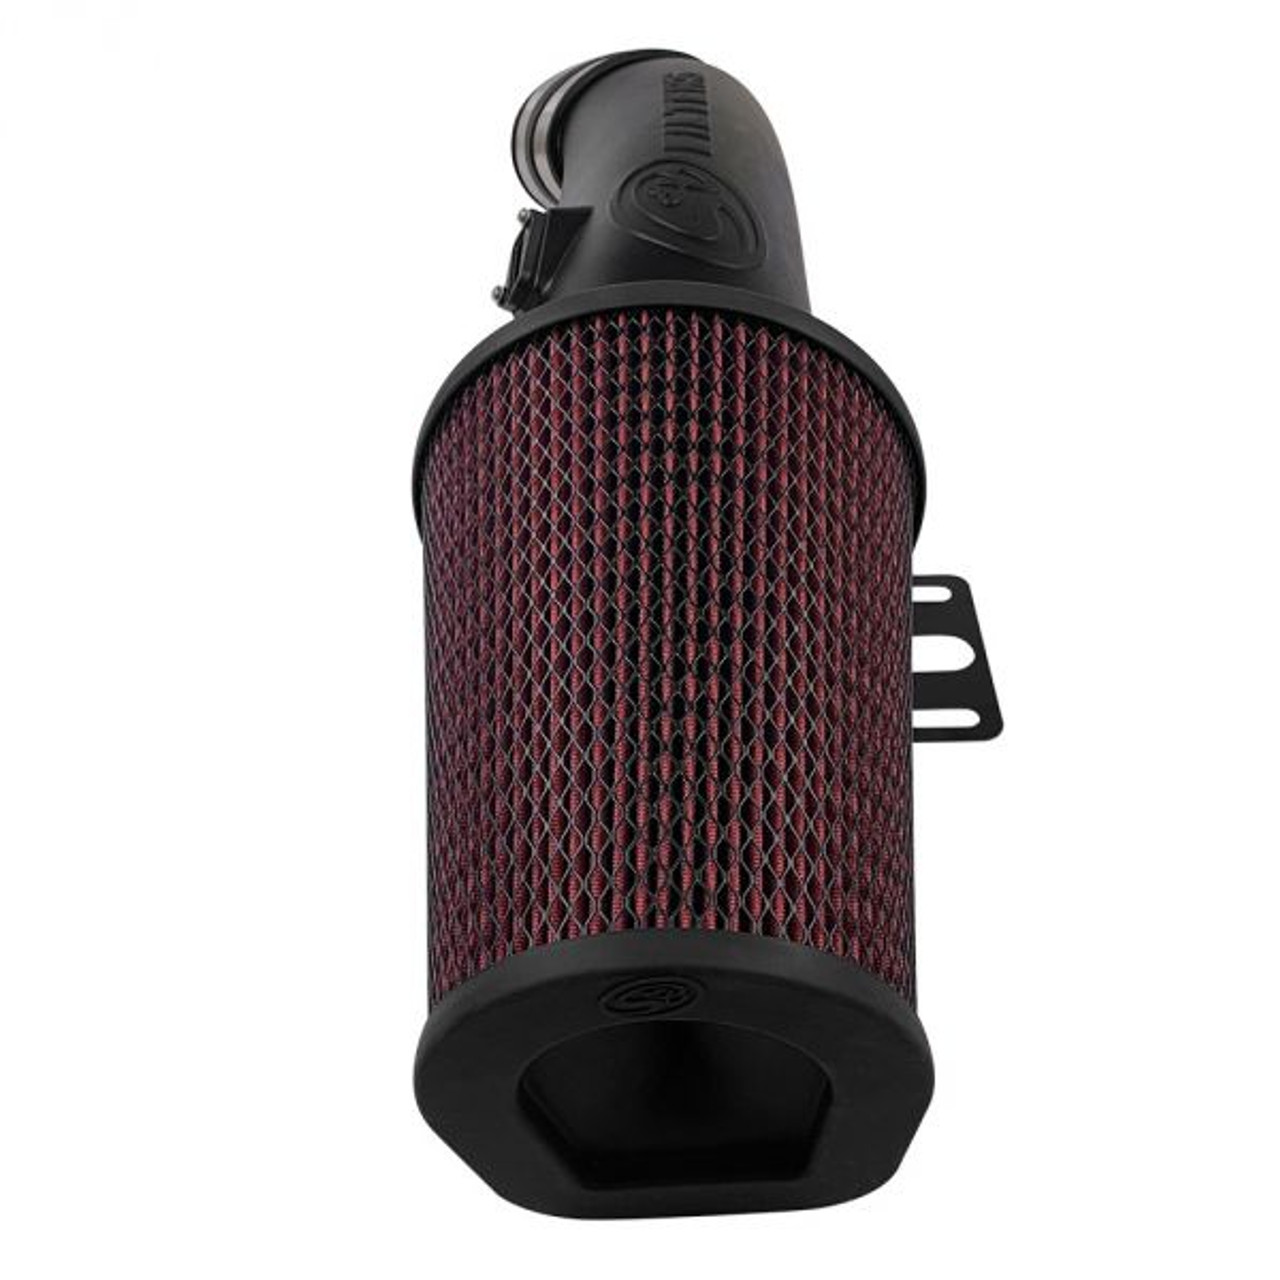 S&B Cold Air Intake For 2011-2016 Ford Powerstroke Diesel 6.7L F250 F350 Open Style - 75-6000